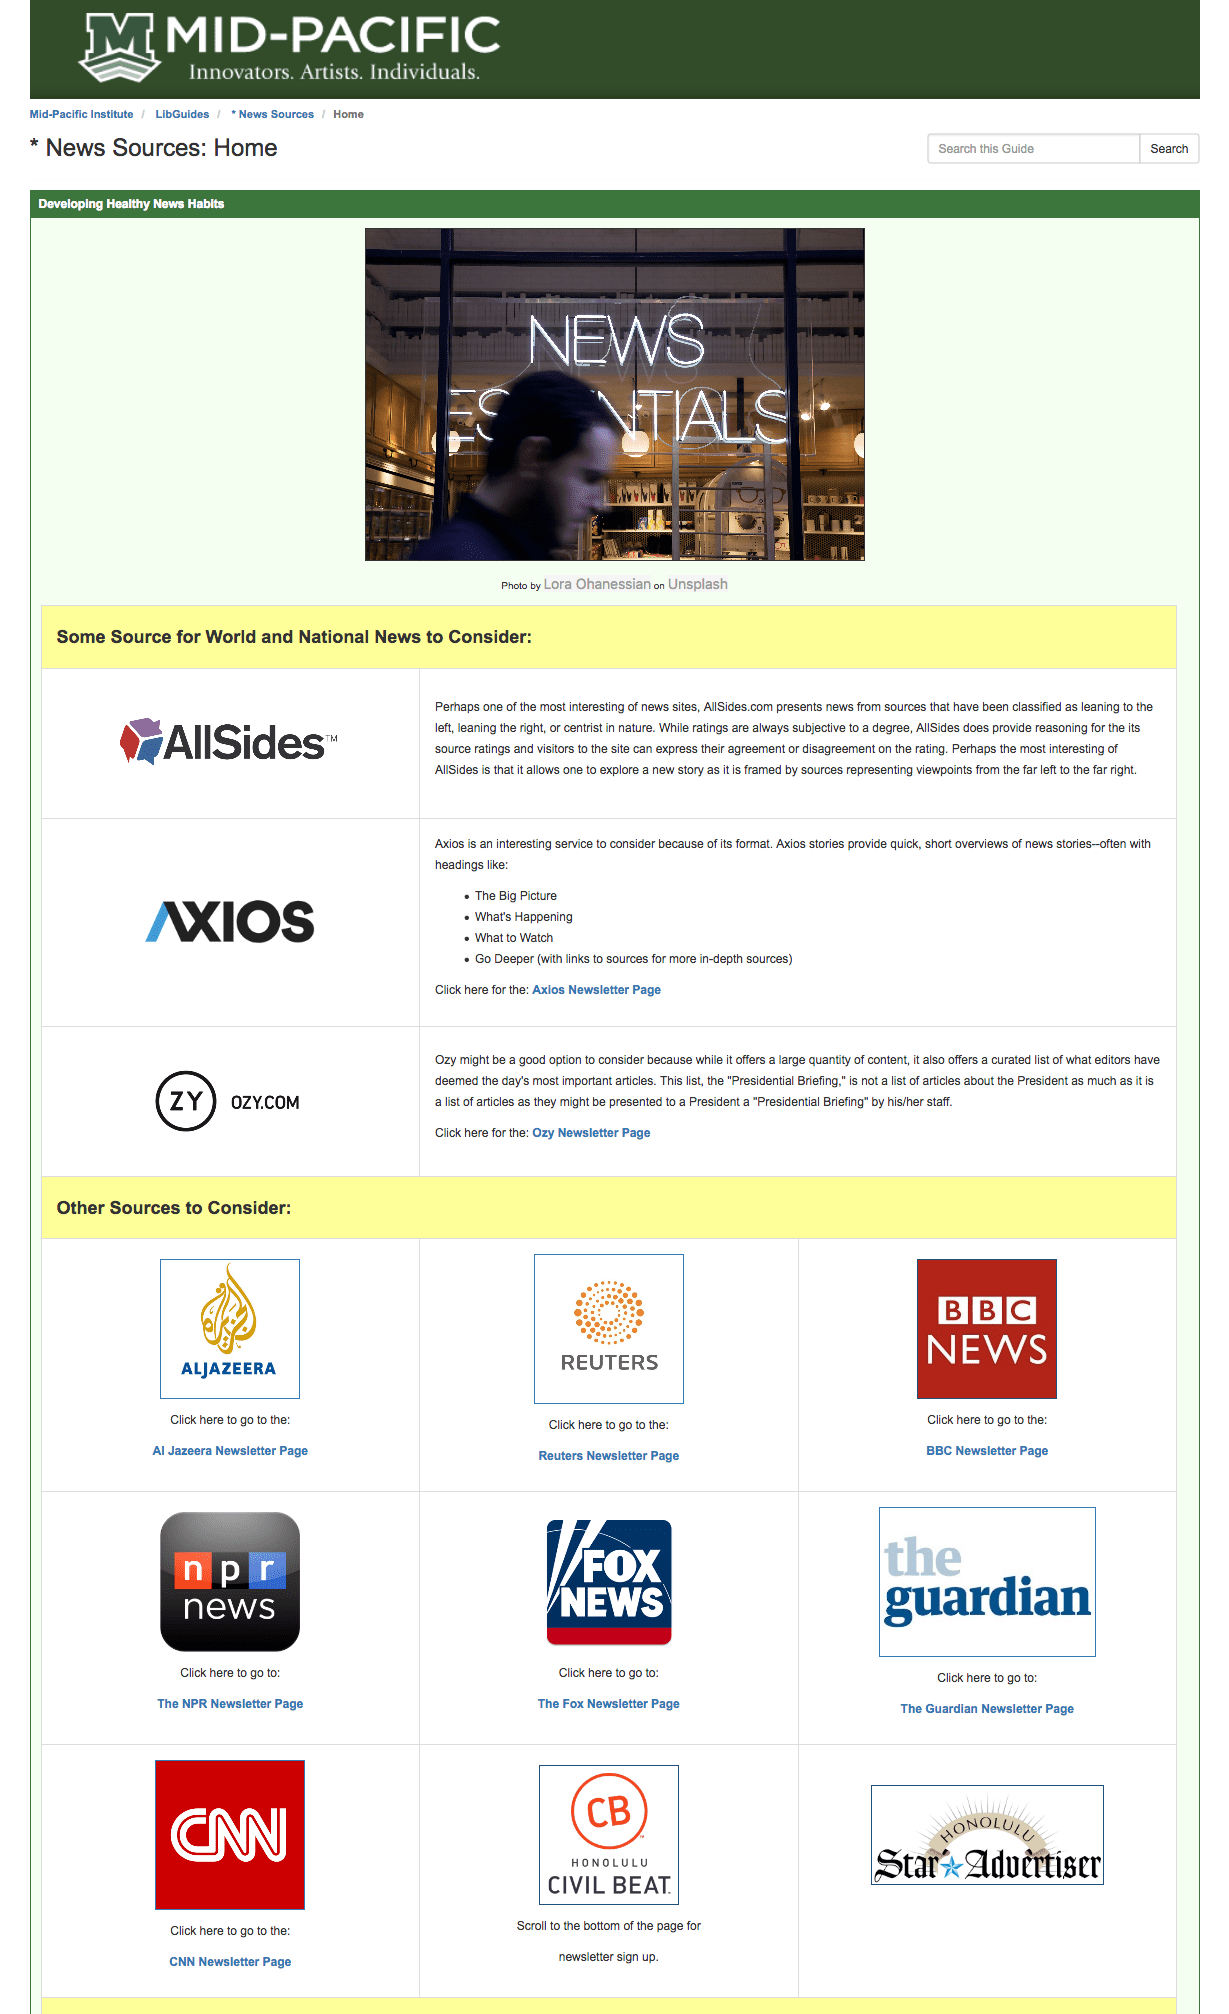 screenshot_2019-01-22-libguides-news-sources-home.png